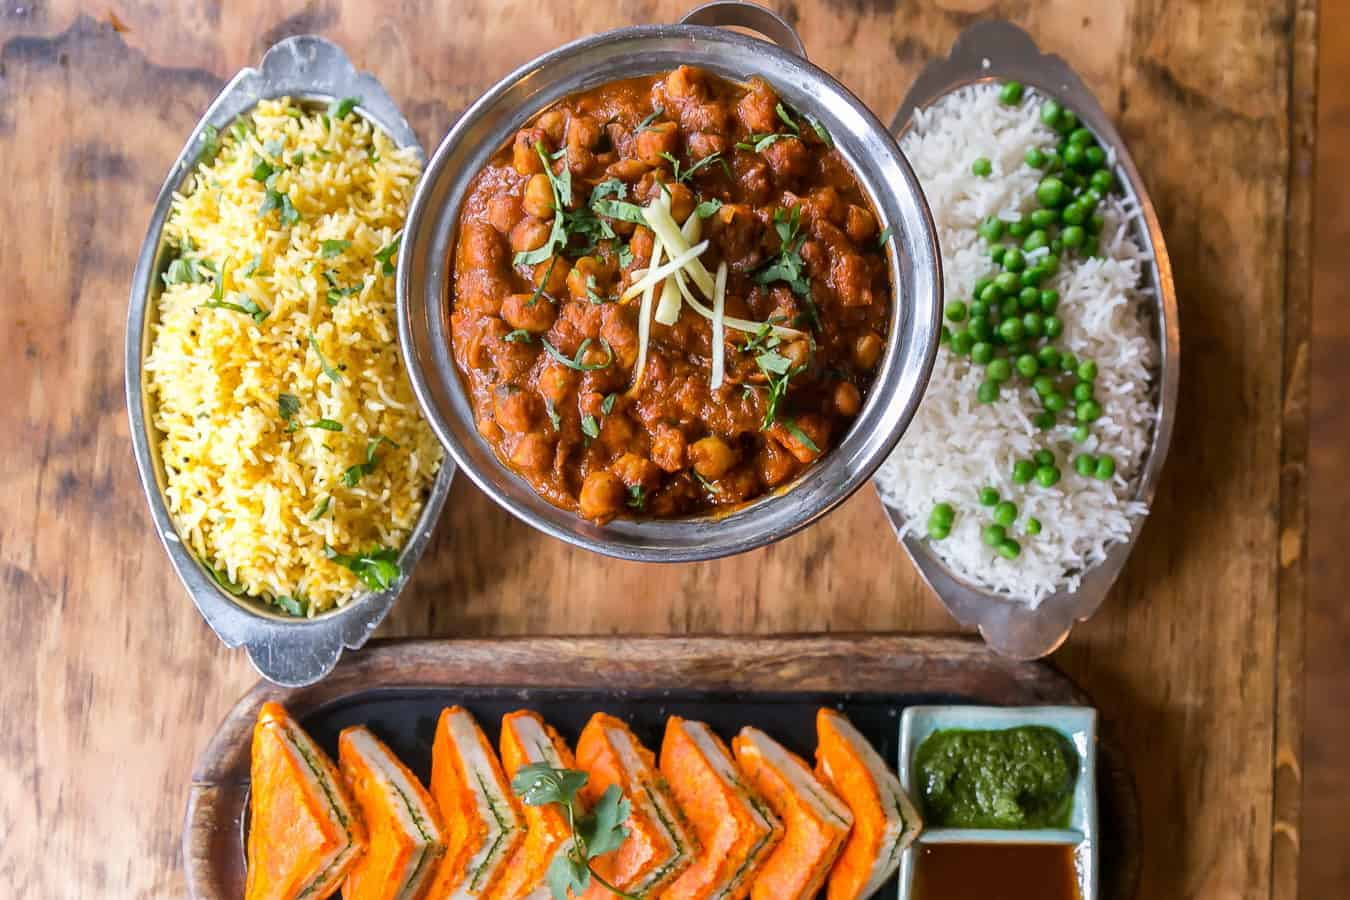 Channa Masala Vegan Indian Food in Vancouver